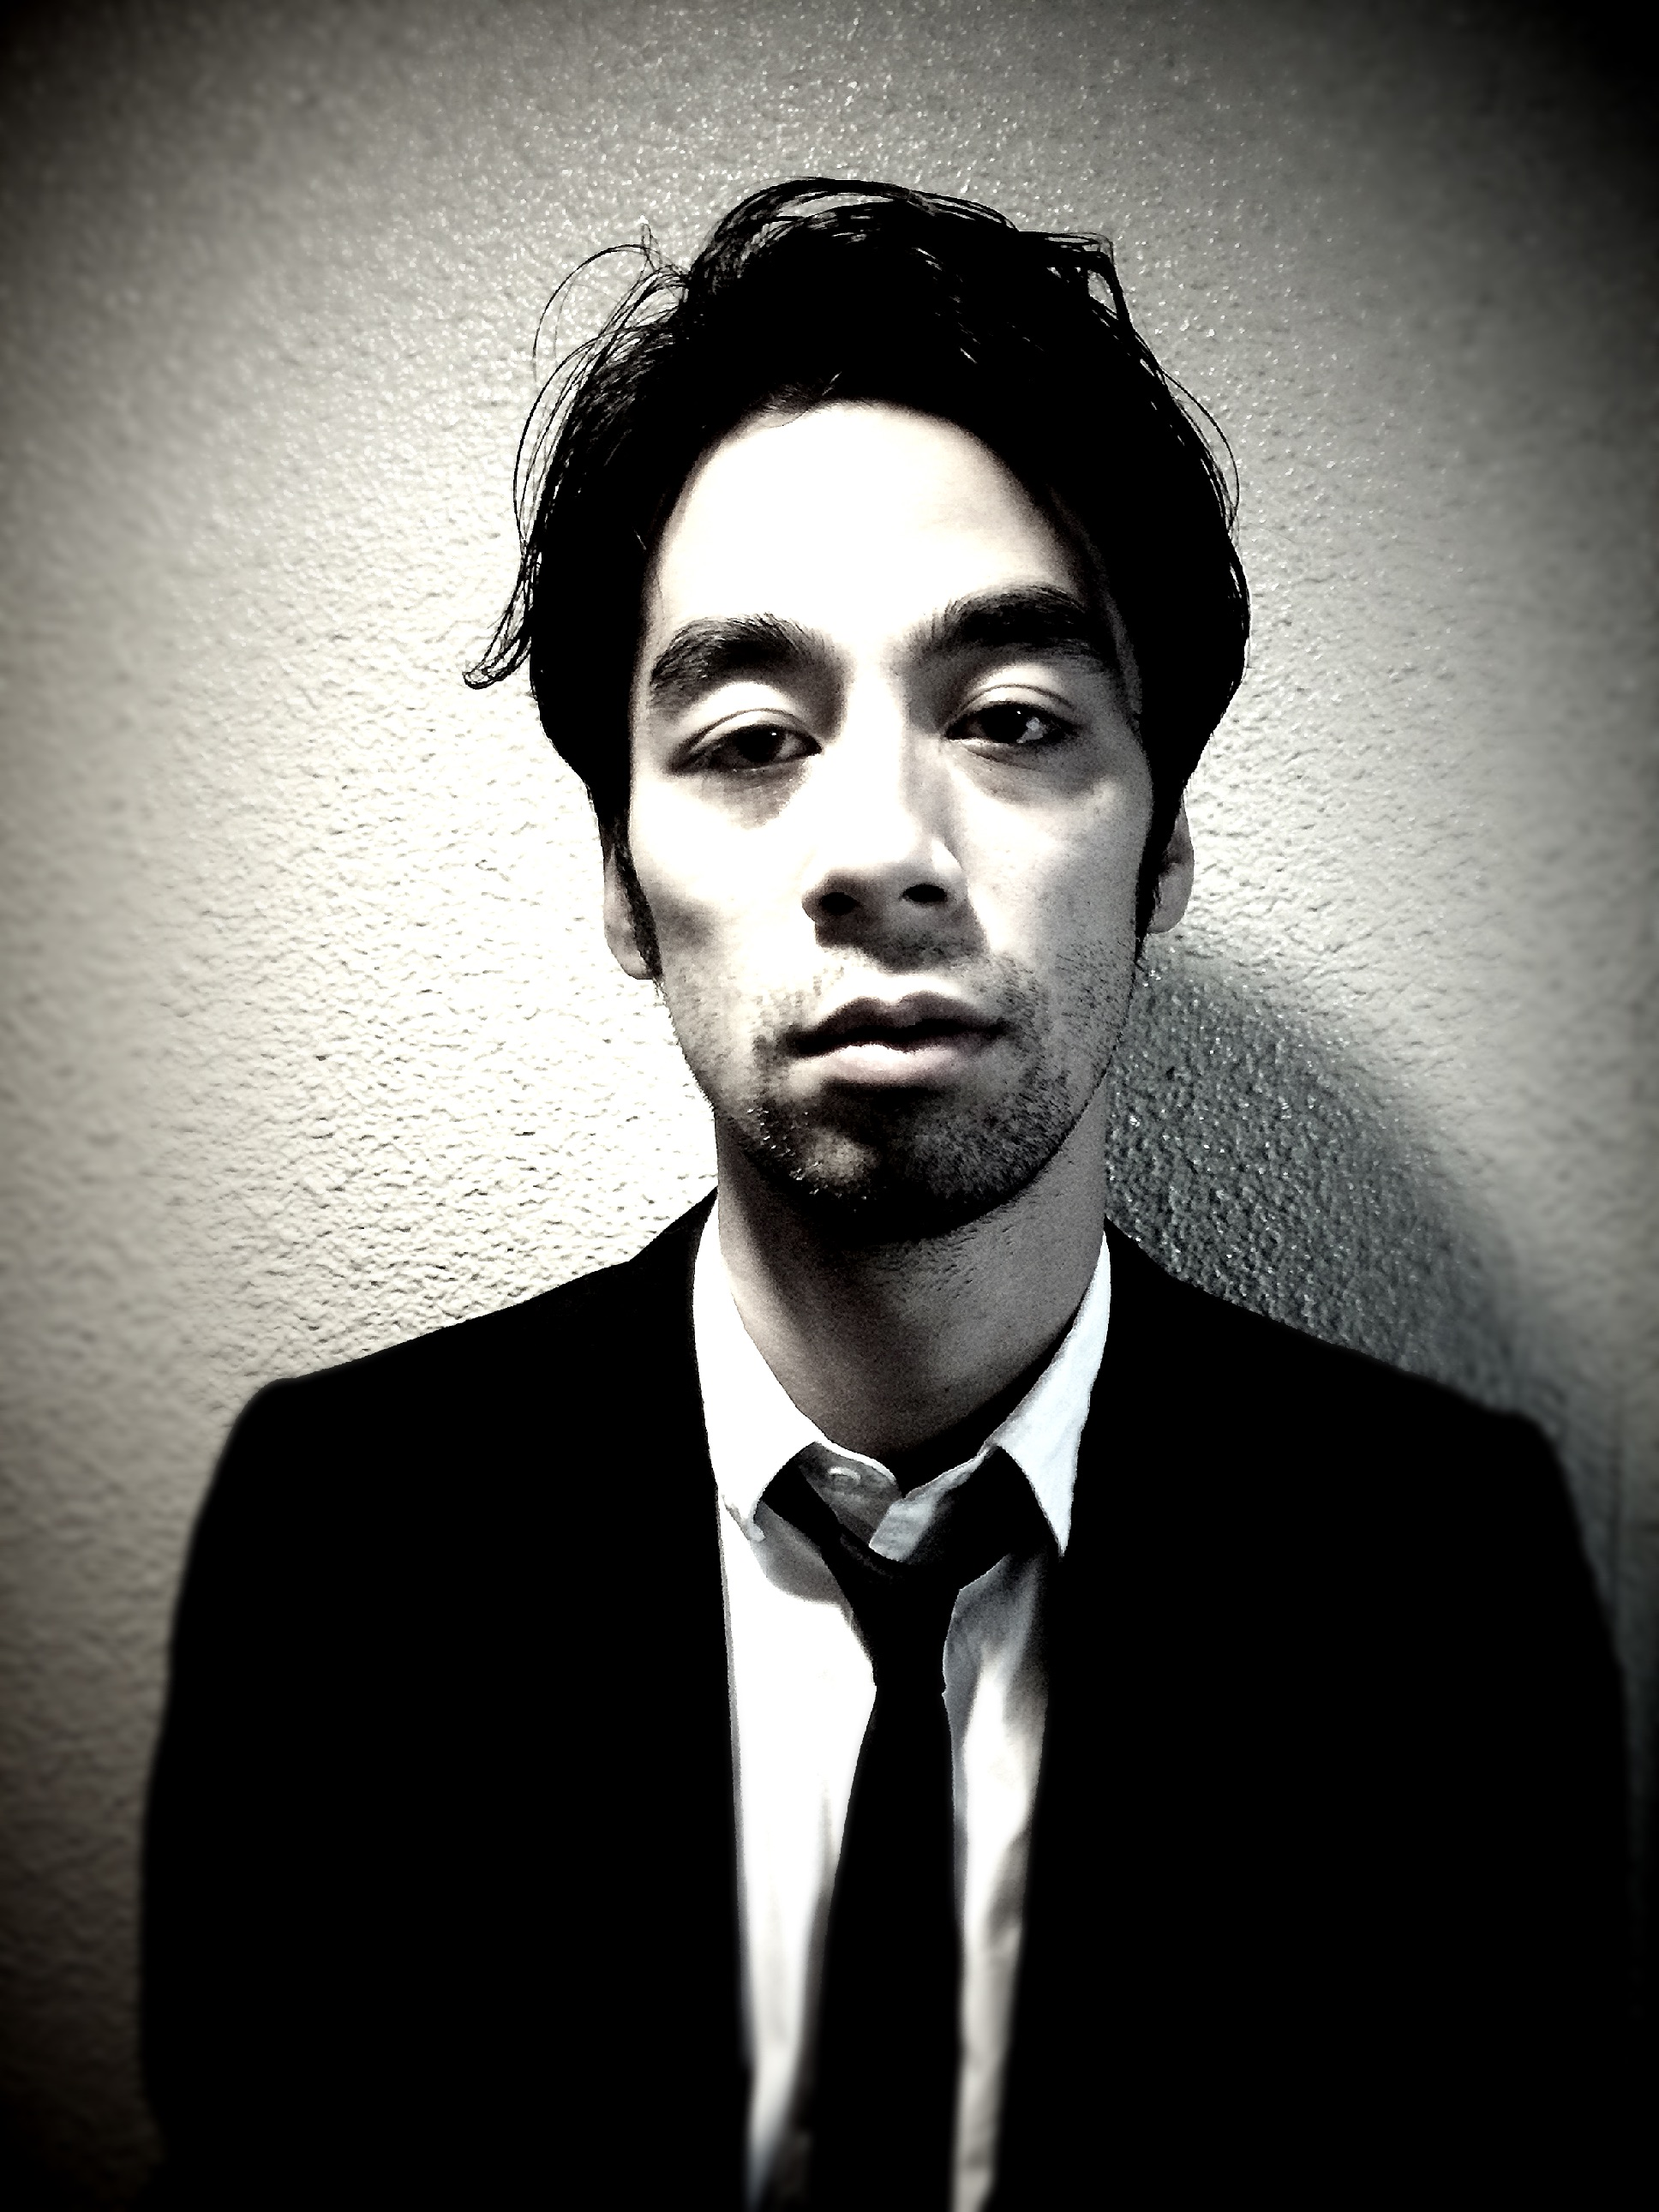 A tired man in suit